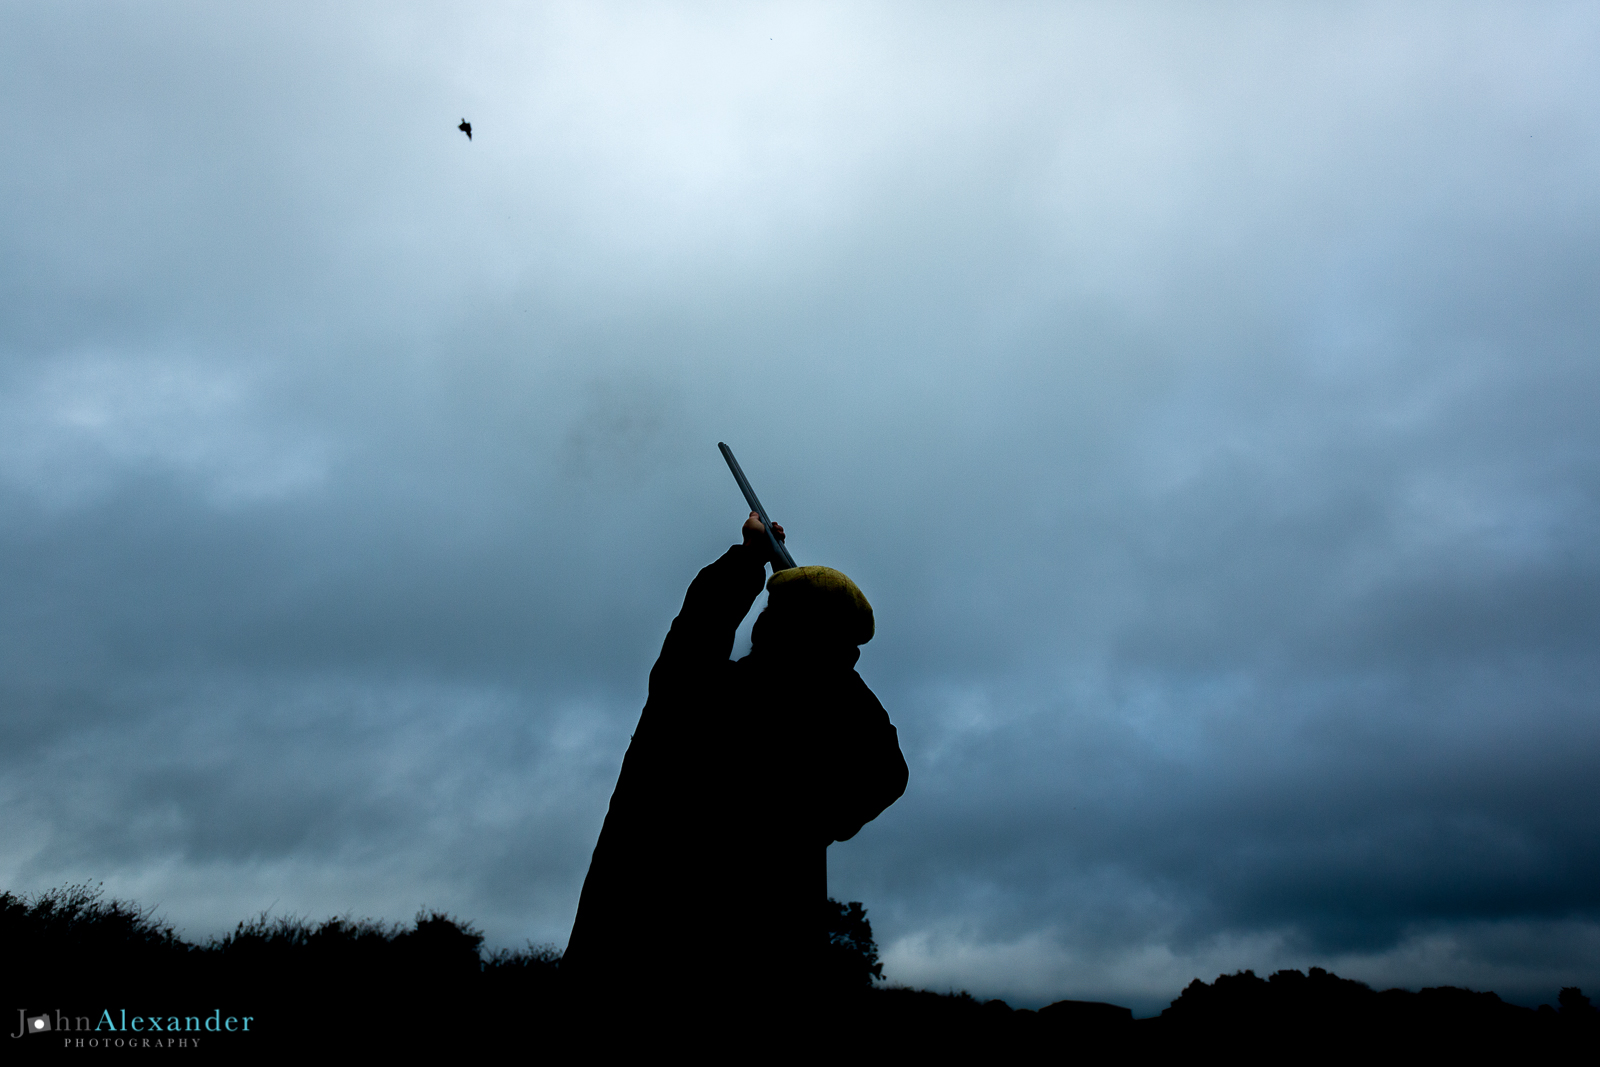 silhouette of gun shooting at a pheasant at dusk